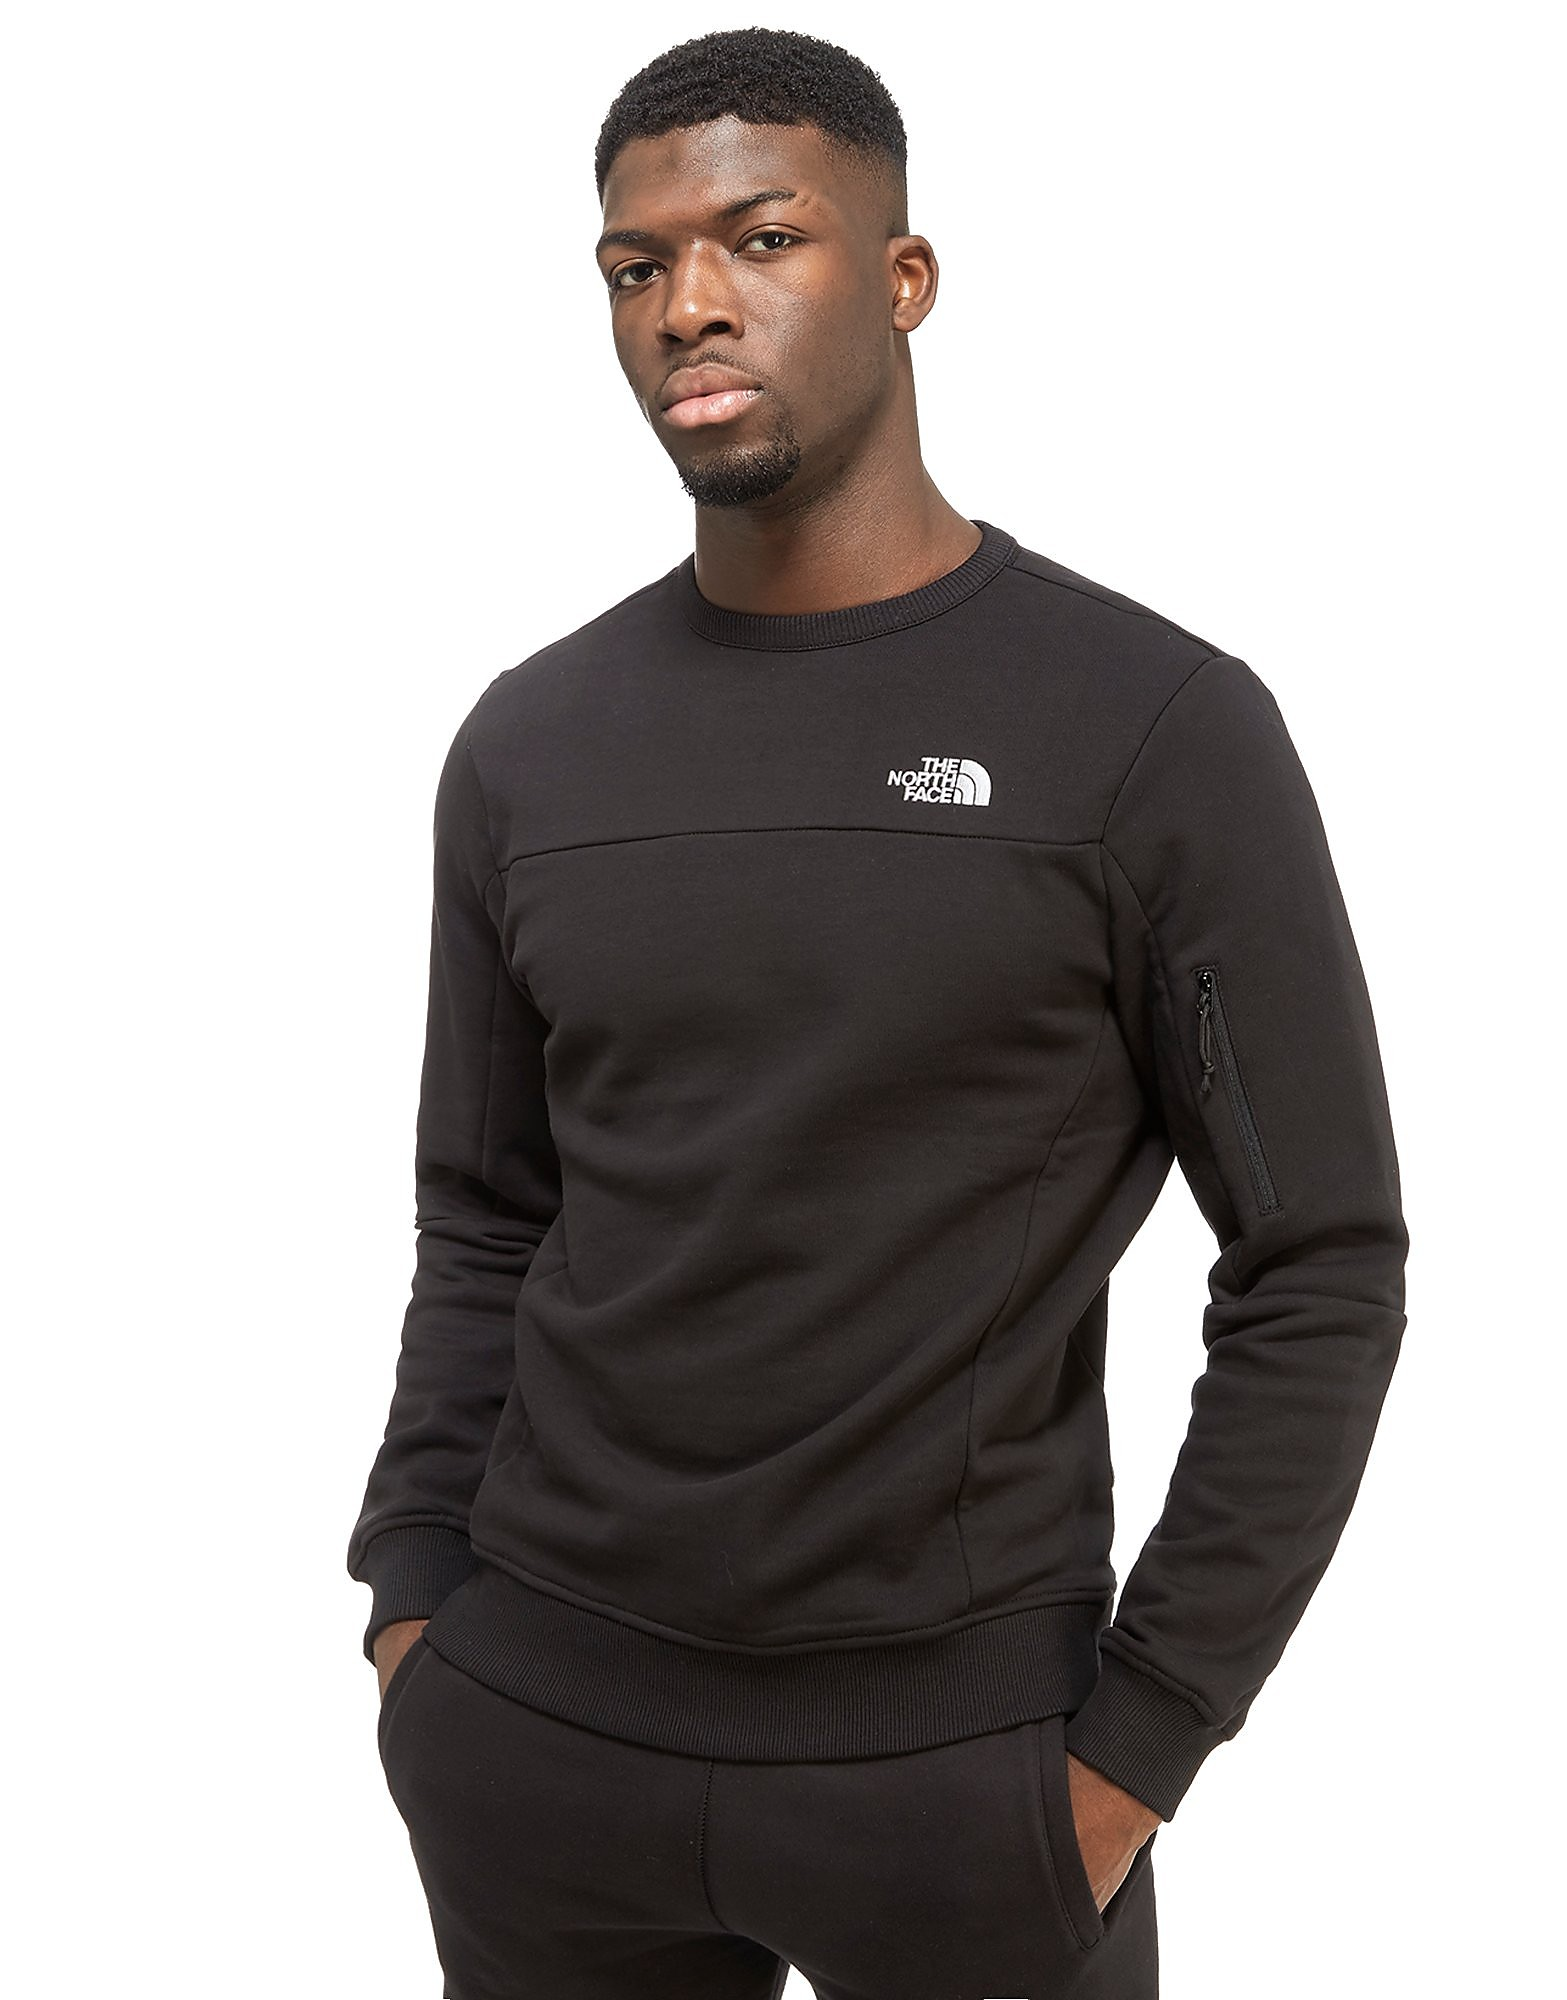 The North Face Z Pocket Crew Sweatshirt